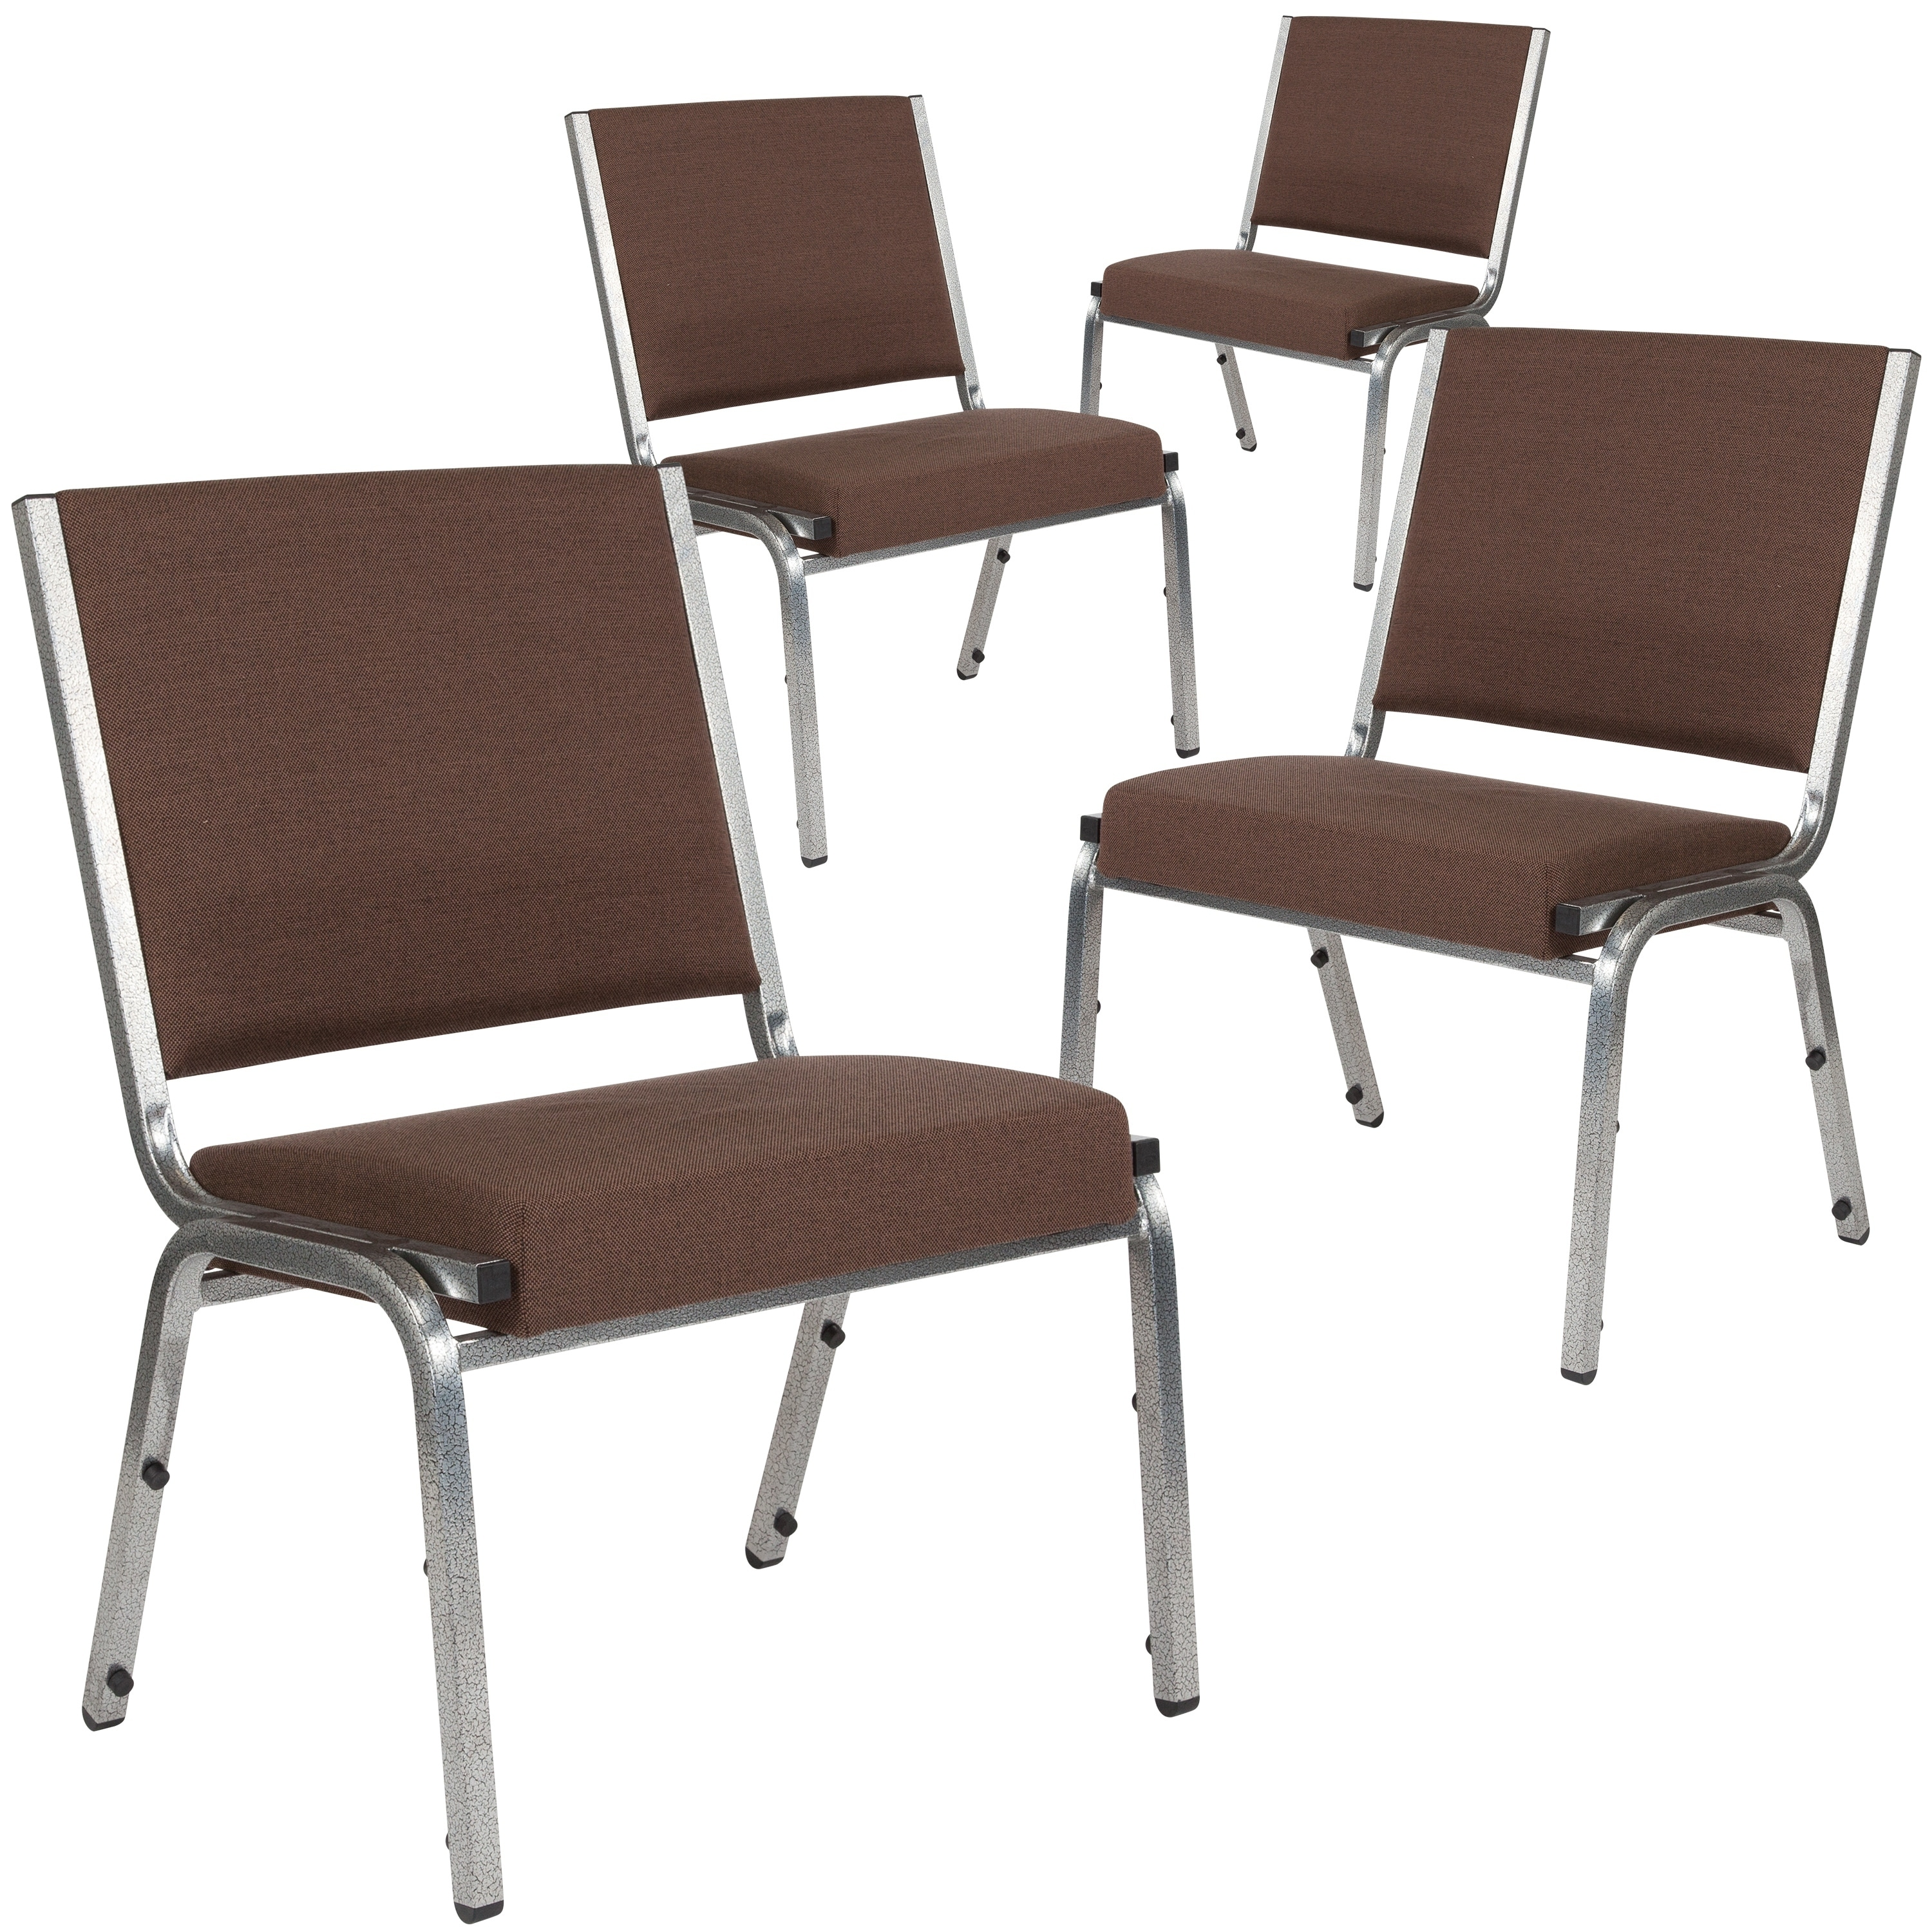 Rated Antimicrobial Bariatric Chair  sc 1 st  Overstock.com & Shop 4 Pk. HERCULES Series 1500 lb. Rated Antimicrobial Bariatric ...